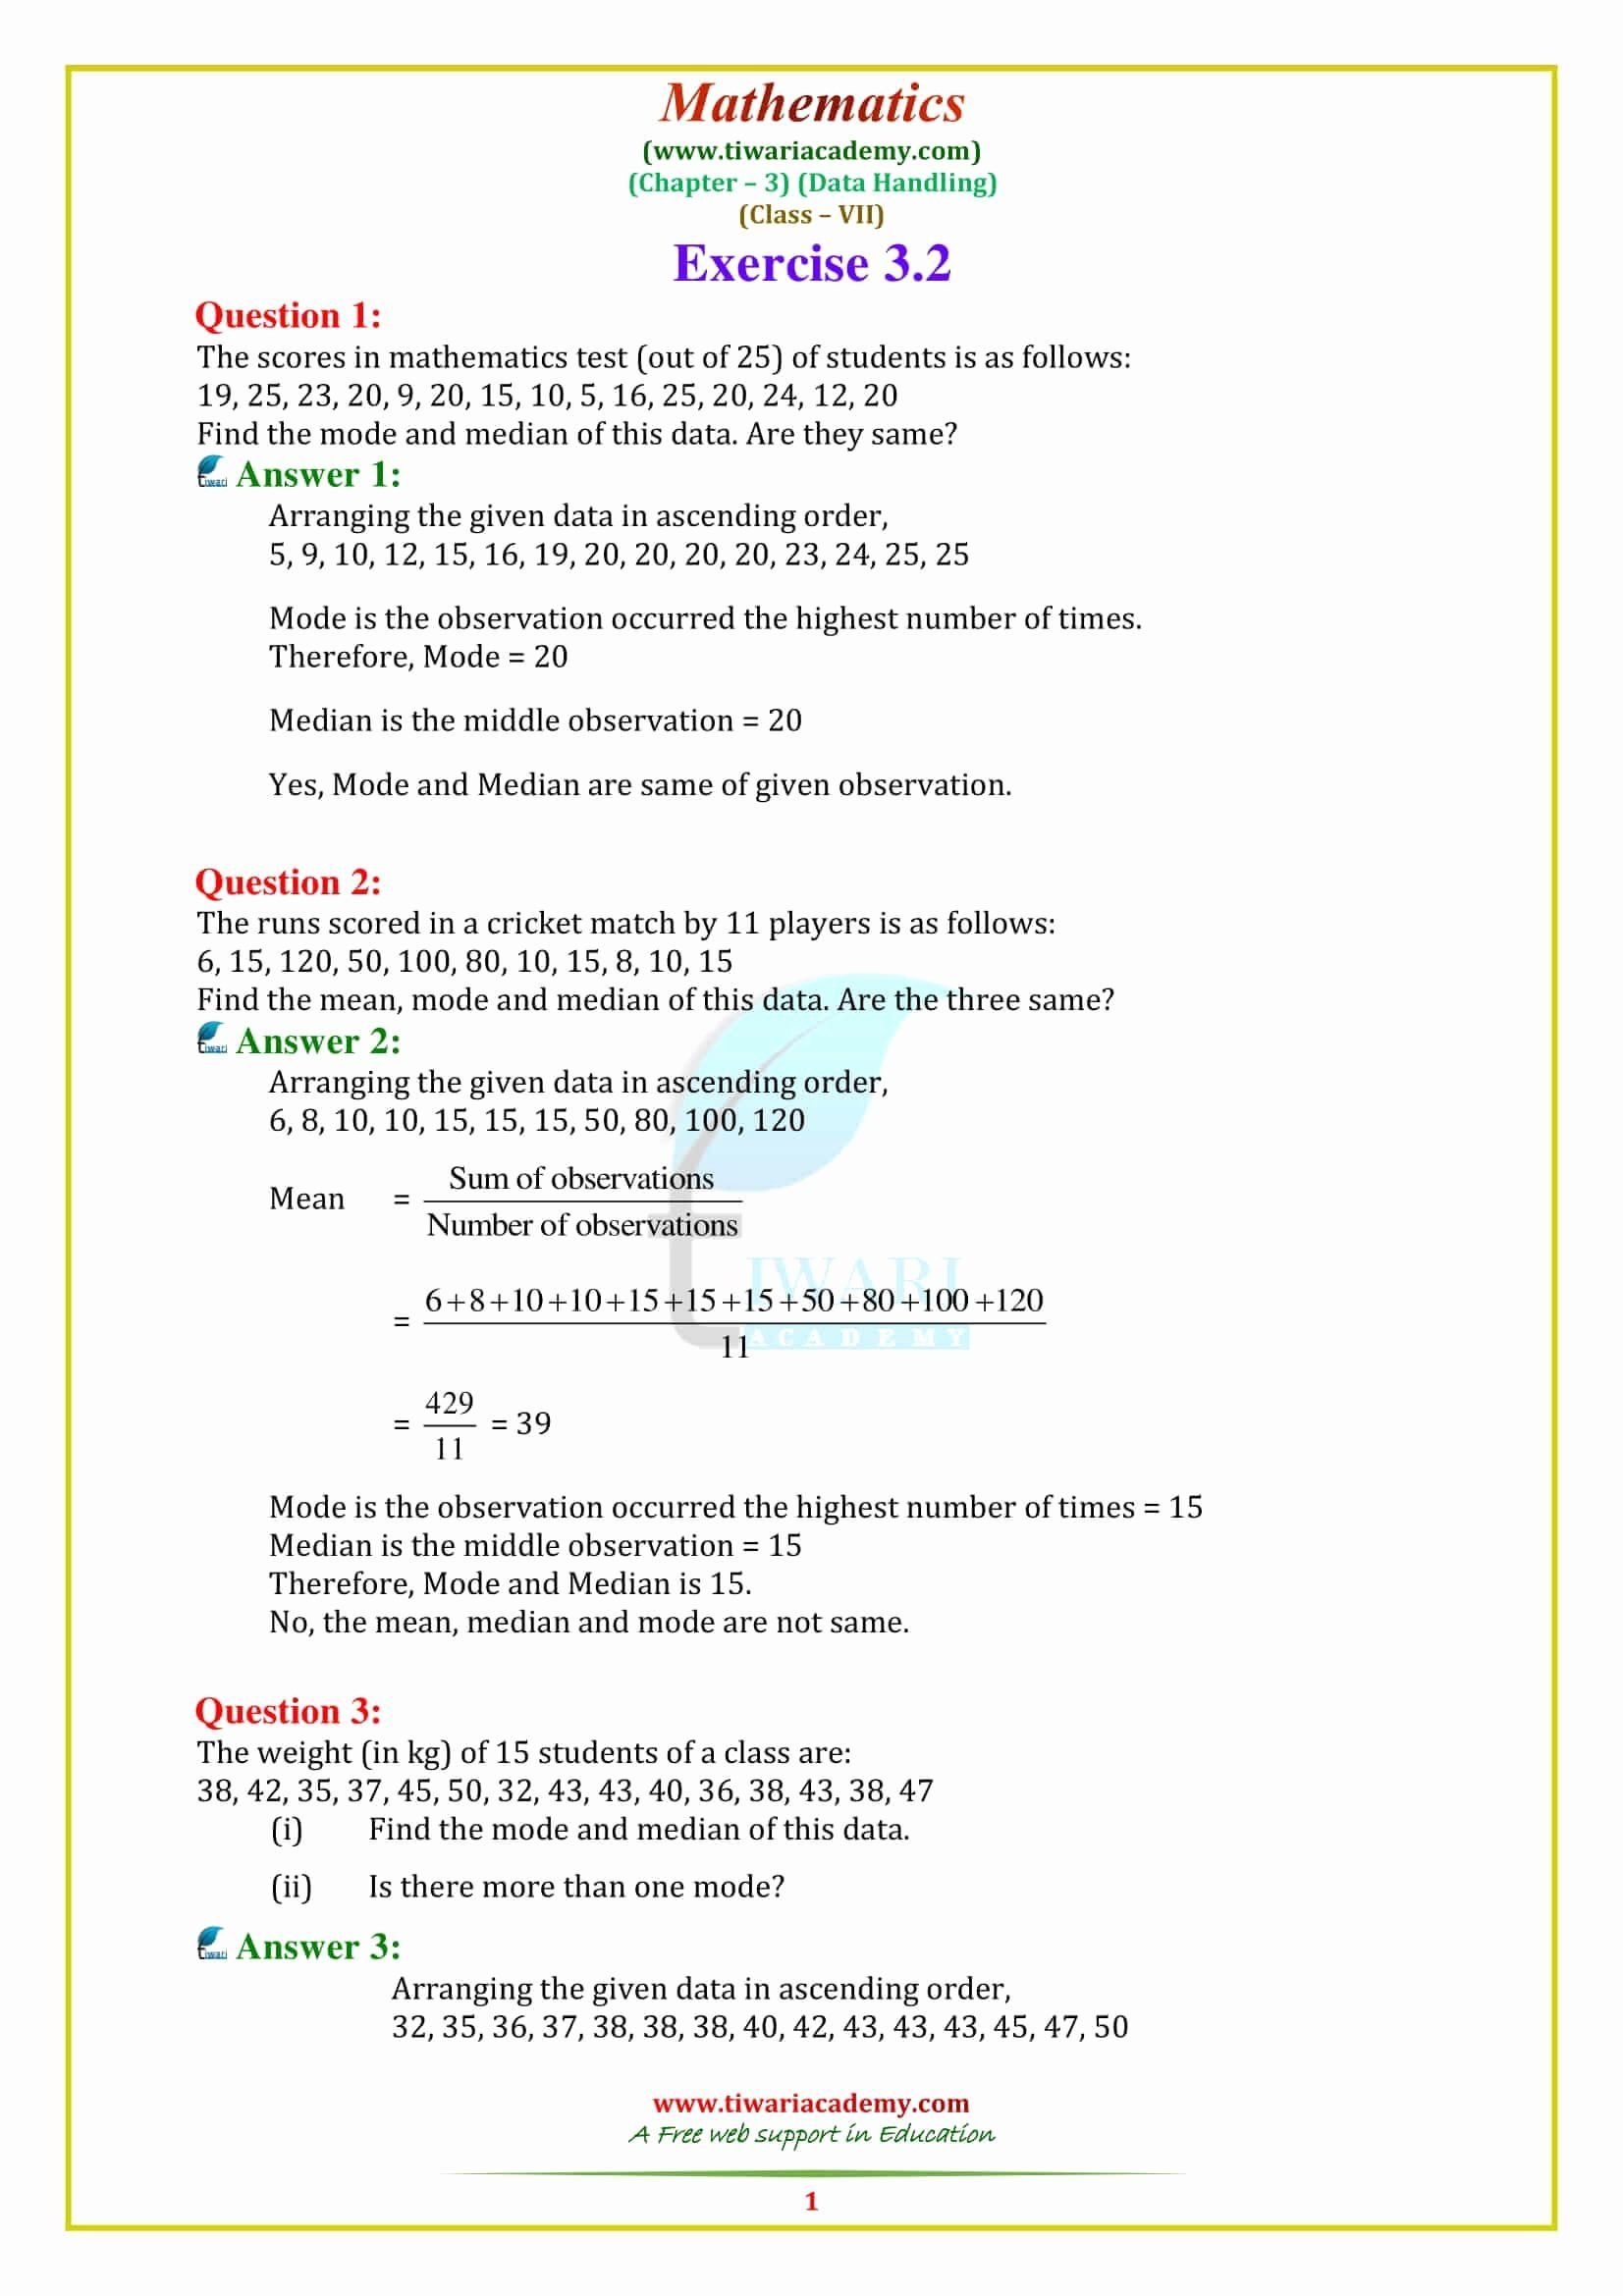 Capacity Worksheets 3rd Grade Inspirational Ncert solutions for Maths  Chapter Math 7th Grade Cbse   Math worksheet [ 2339 x 1653 Pixel ]